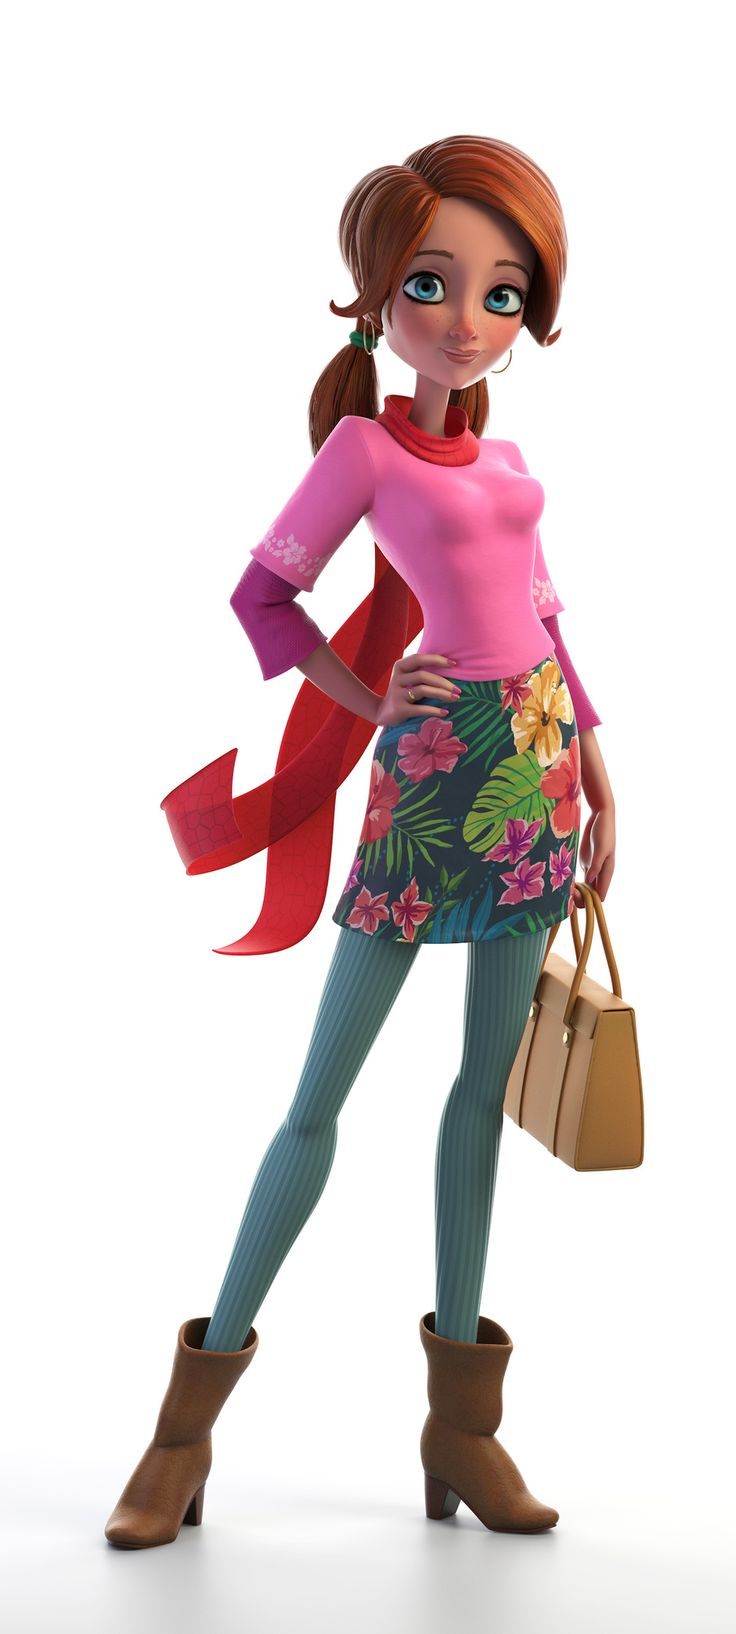 3d Character Design Behance : Best images about d pics on pinterest hotel